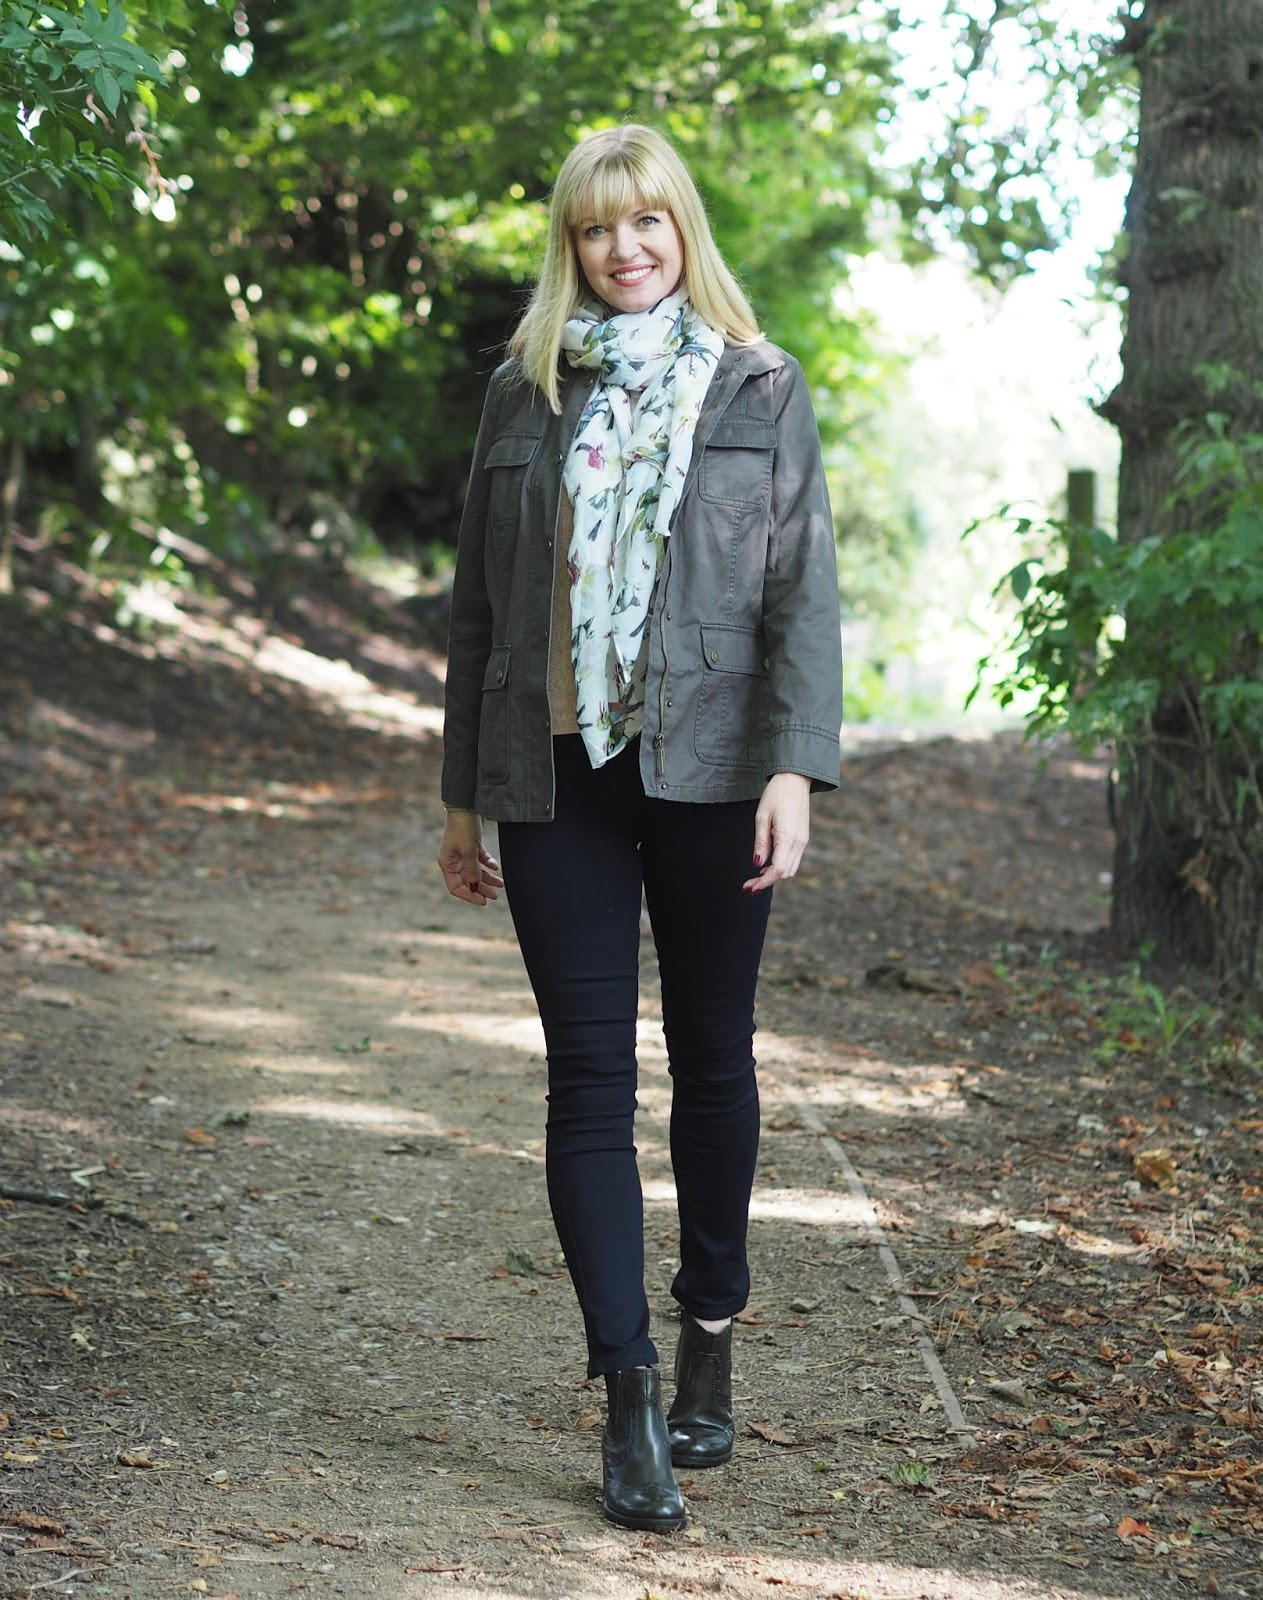 Dressing for the Coutry with Dash fashion. Olive waxed jacket, skinny jeans, a pink sweater and Chelsea boots